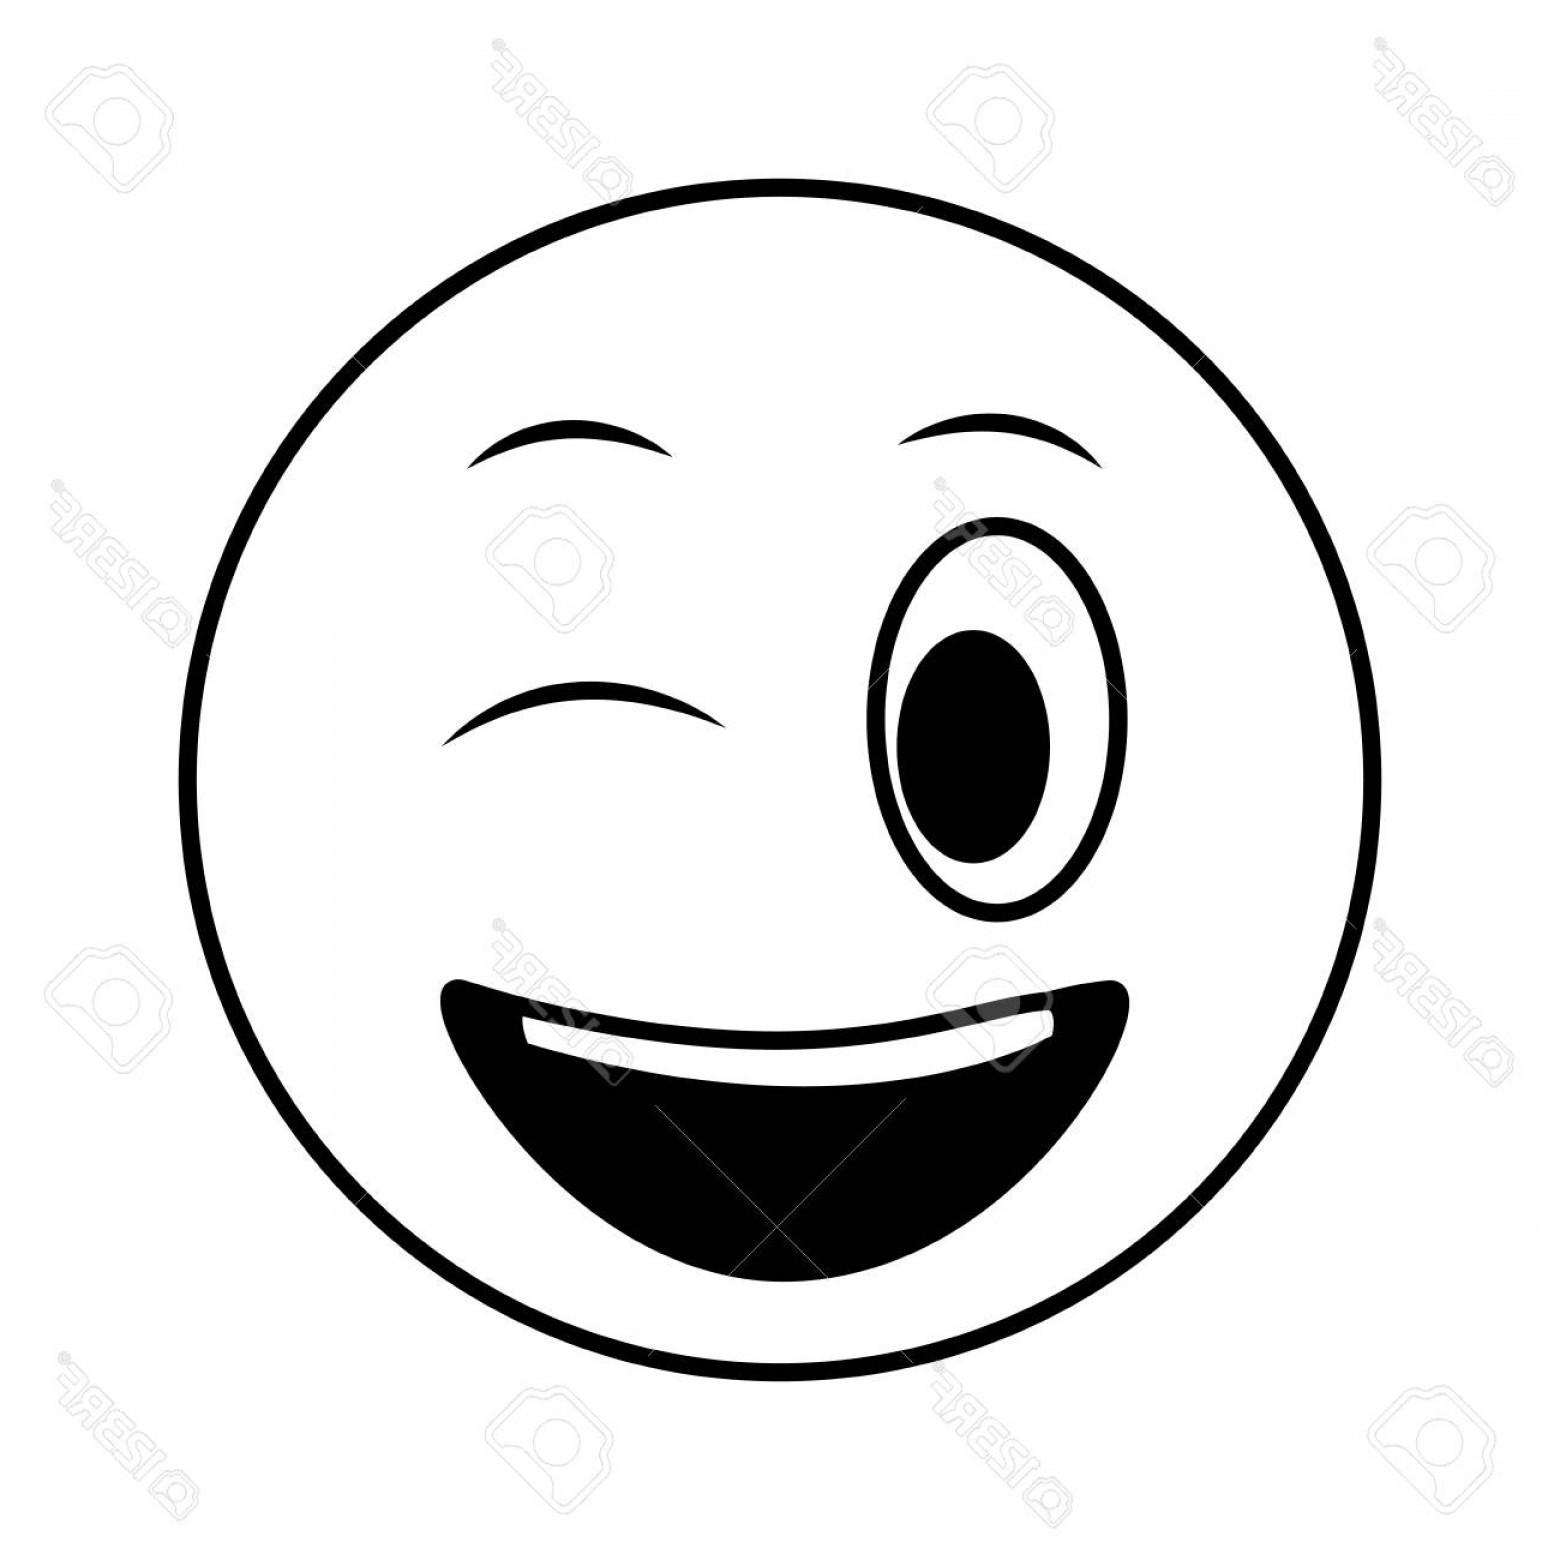 Smiley-Face Winking Vector: Photostock Vector Smiley Big Emoticon Winking Face Vector Illustration Black And White